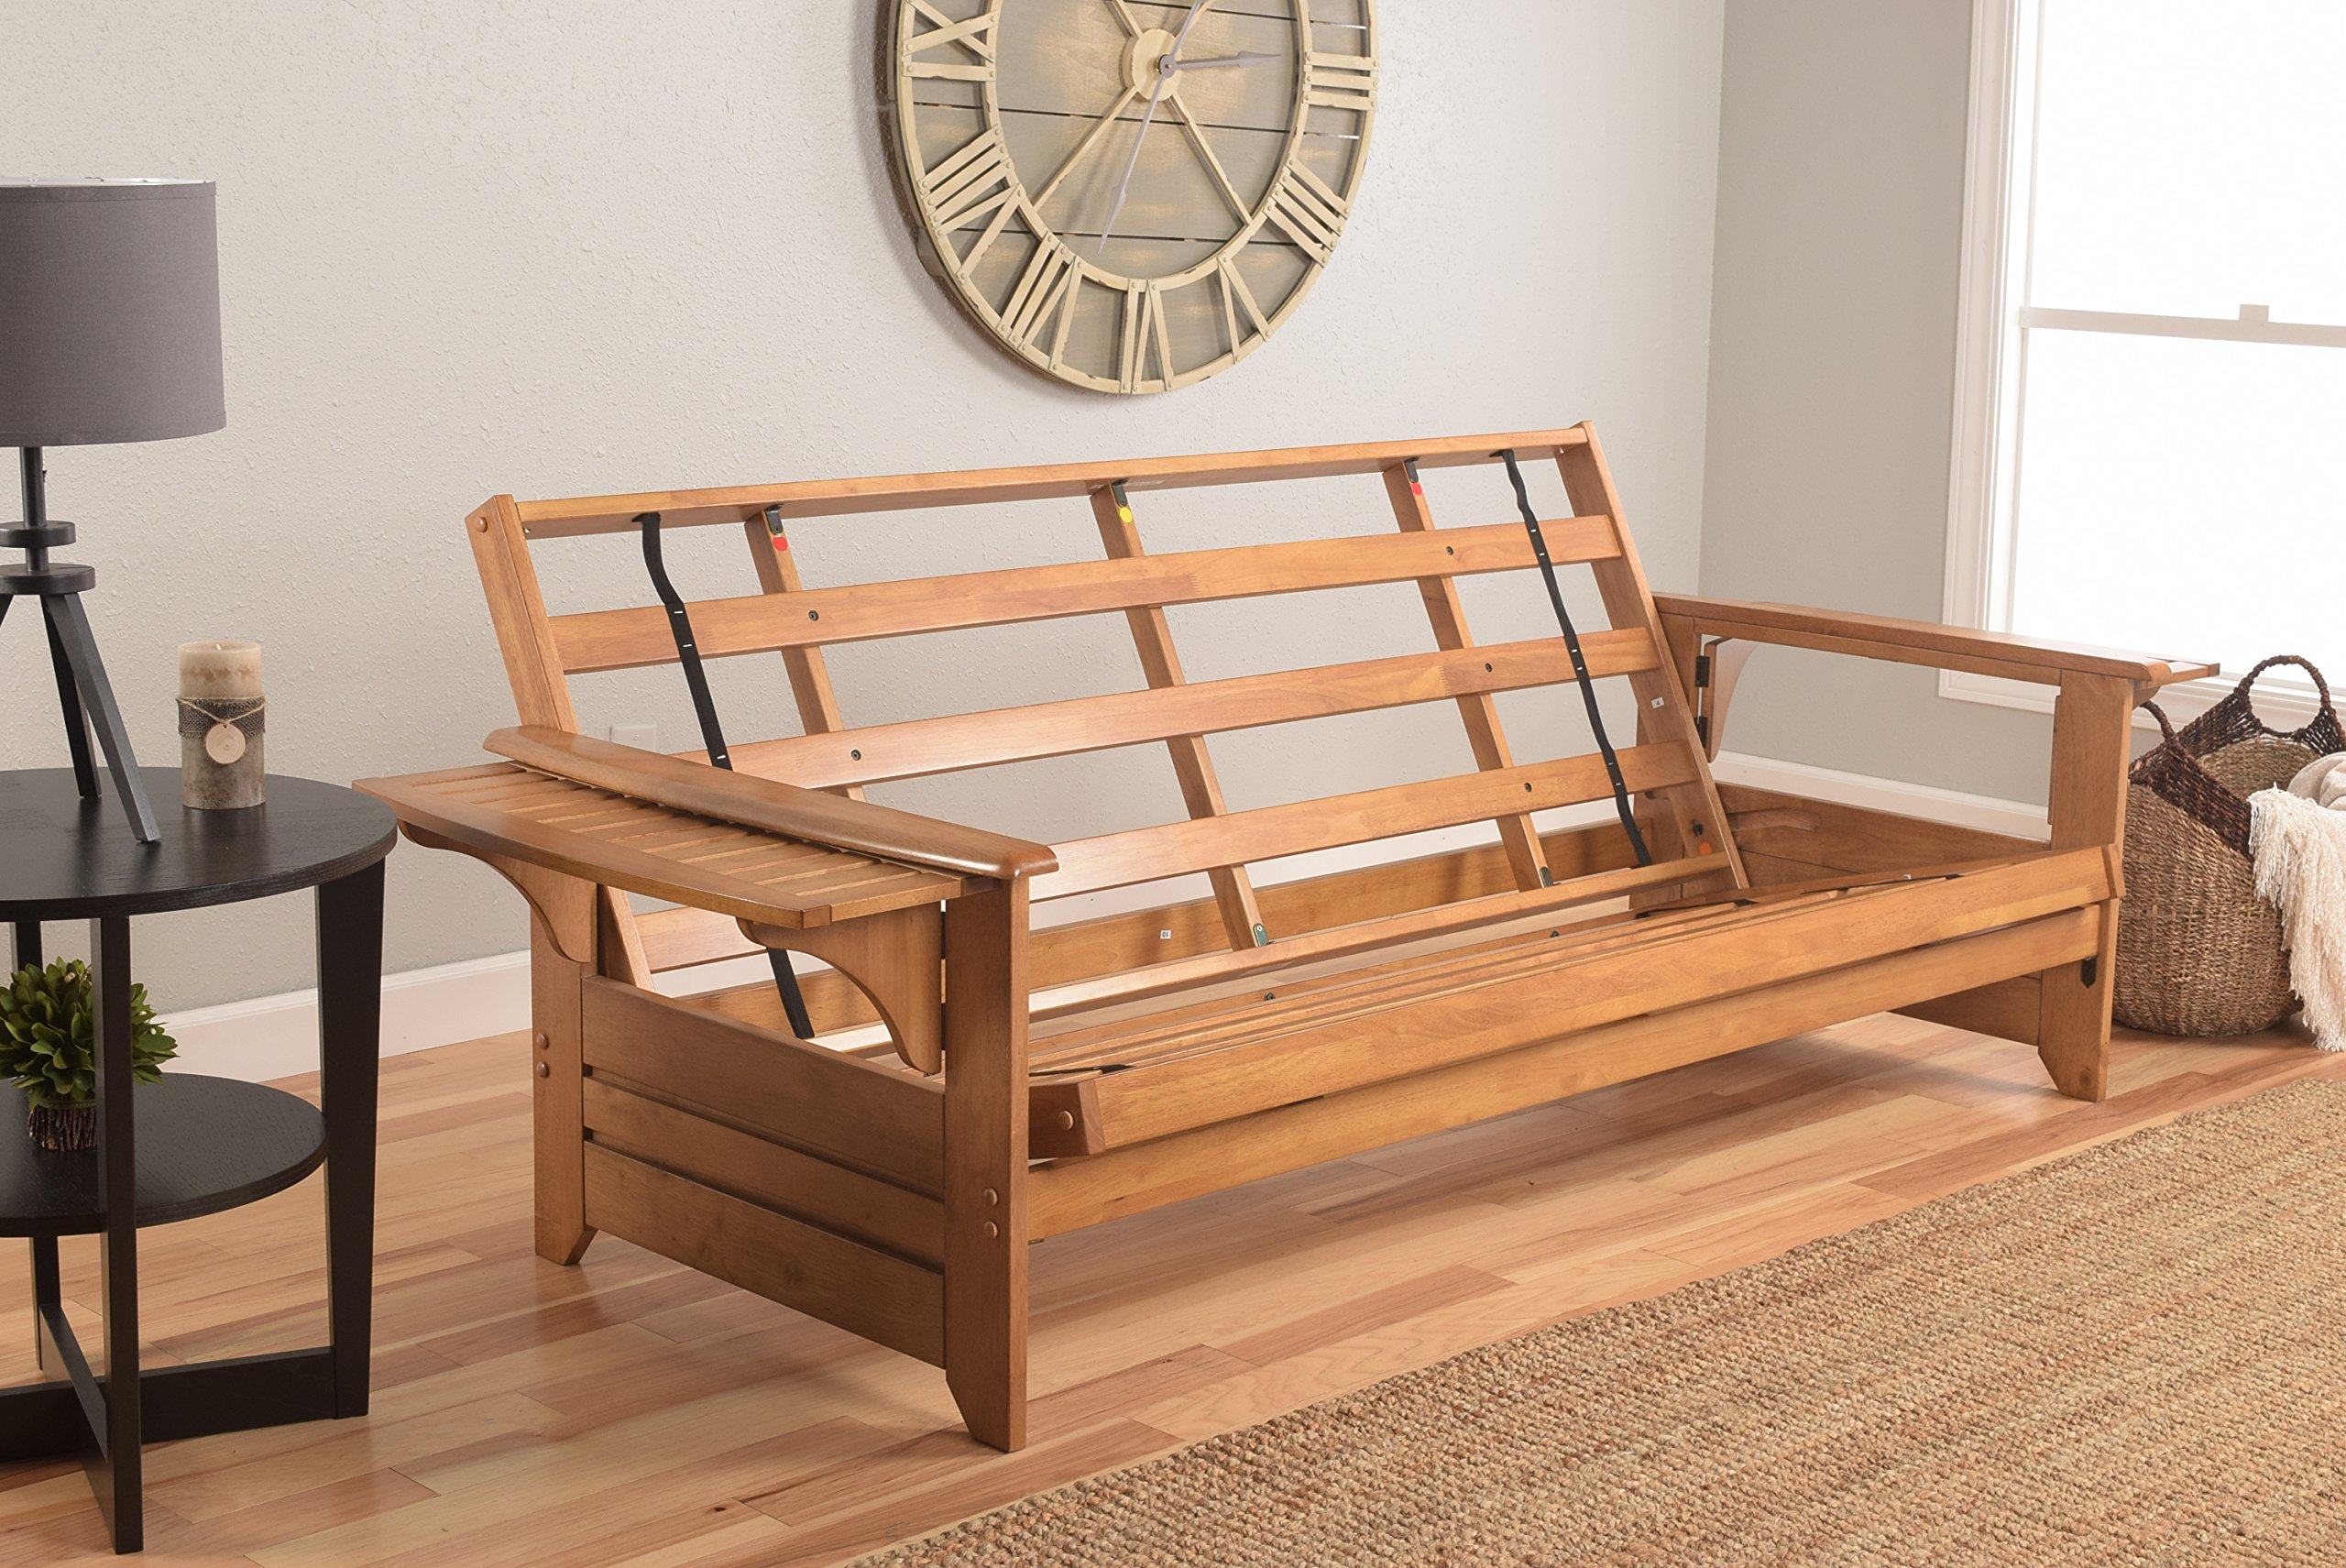 Kodiak Furniture KF Phoenix Queen Futon Frame by Kodiak Furniture